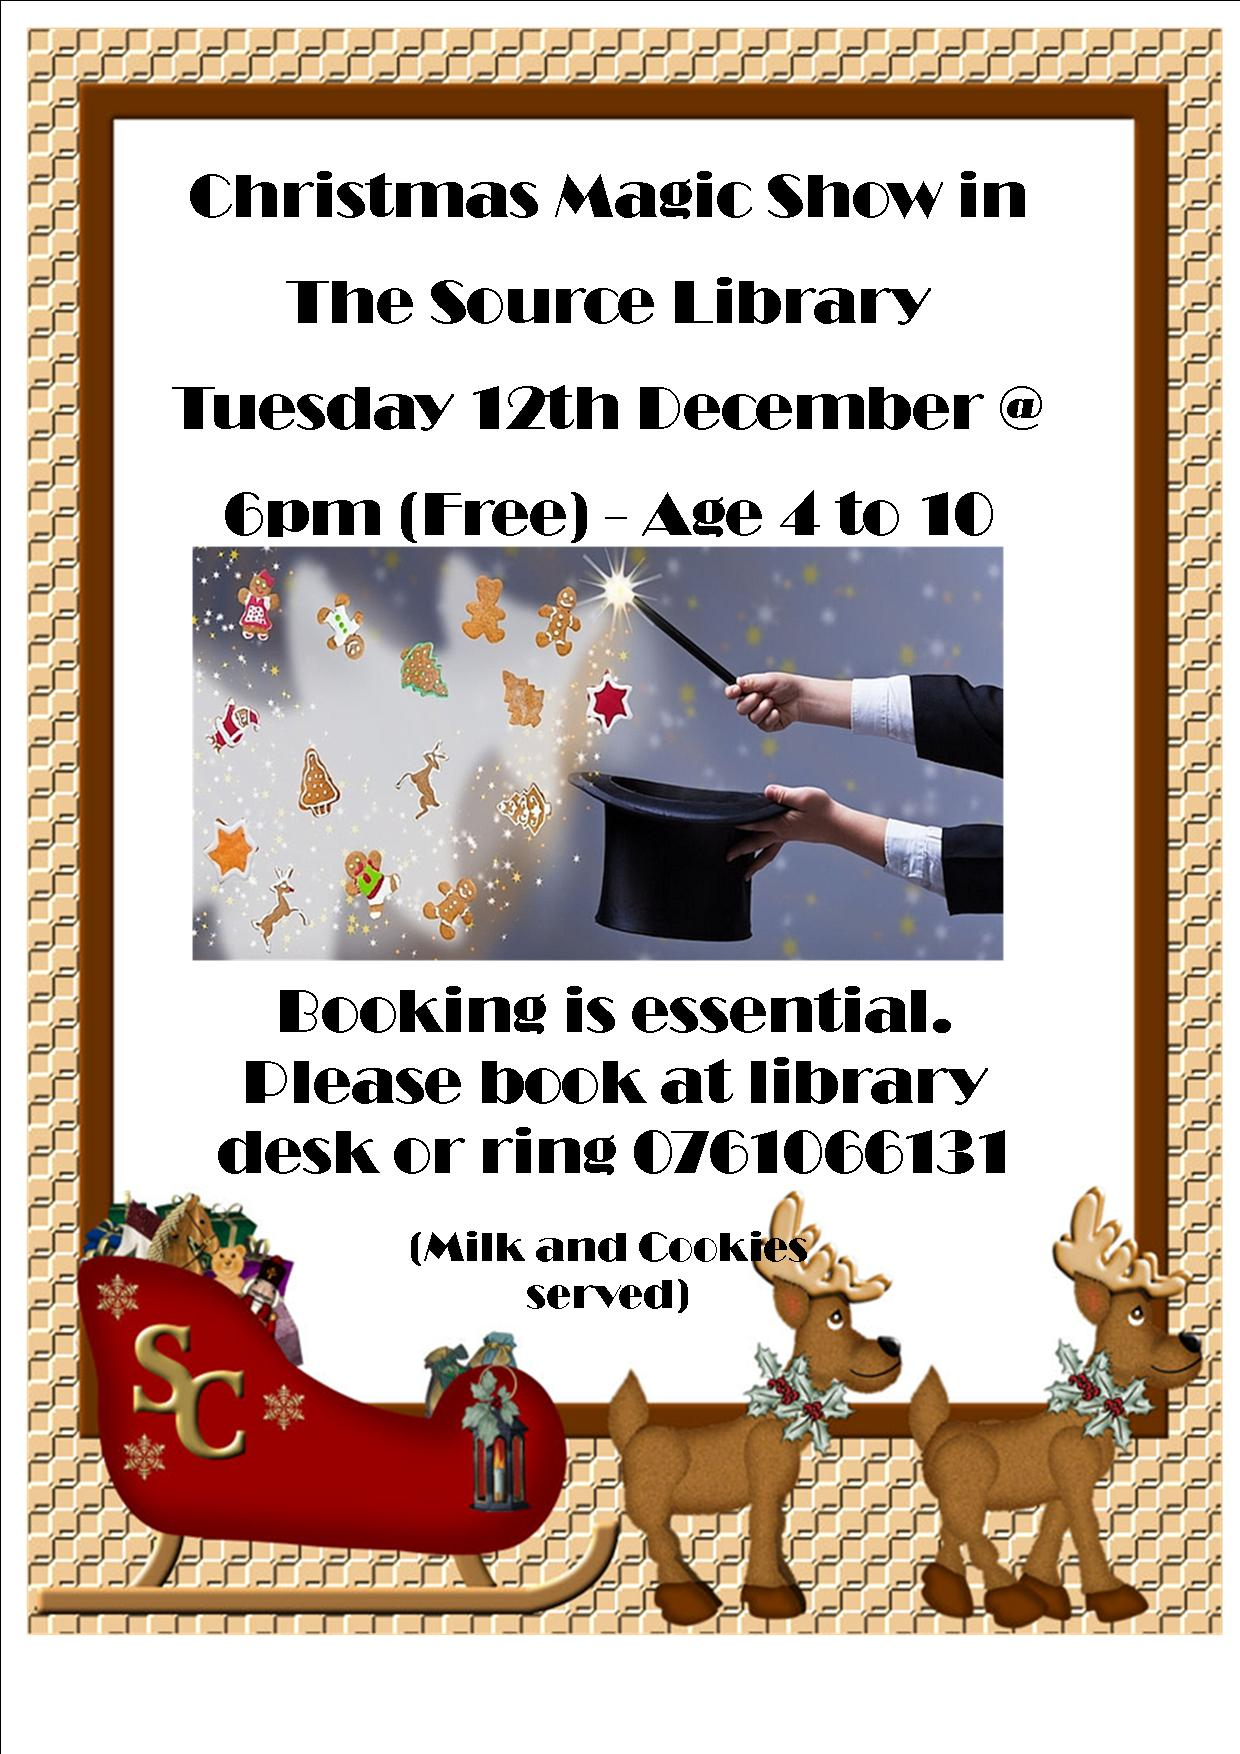 Thurles: Christmas Magic Show At The Source Library